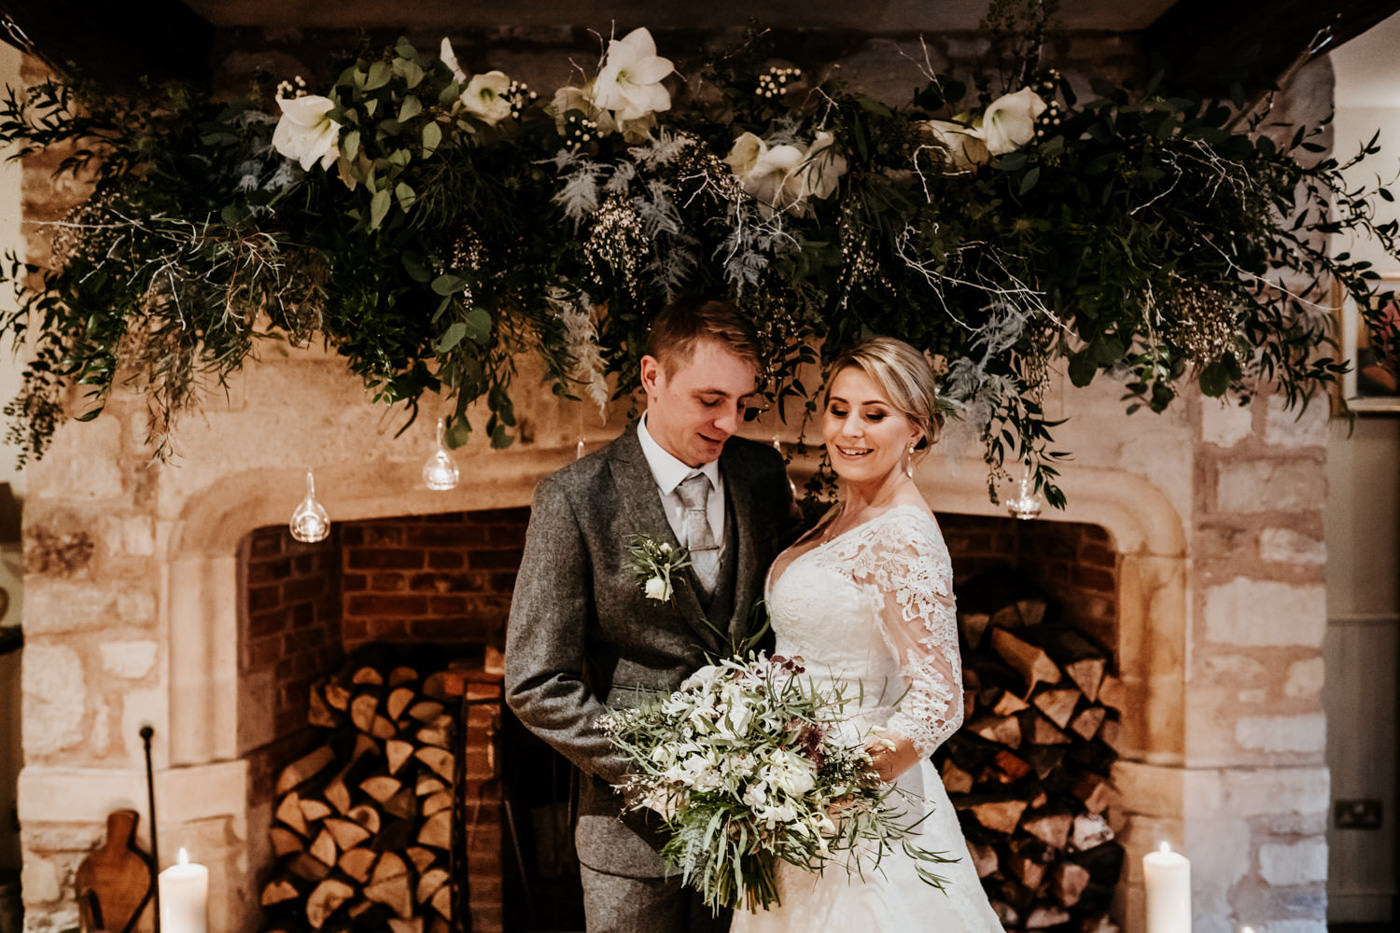 Emily and Rich, Moonraker Hotel, Wiltshire 70